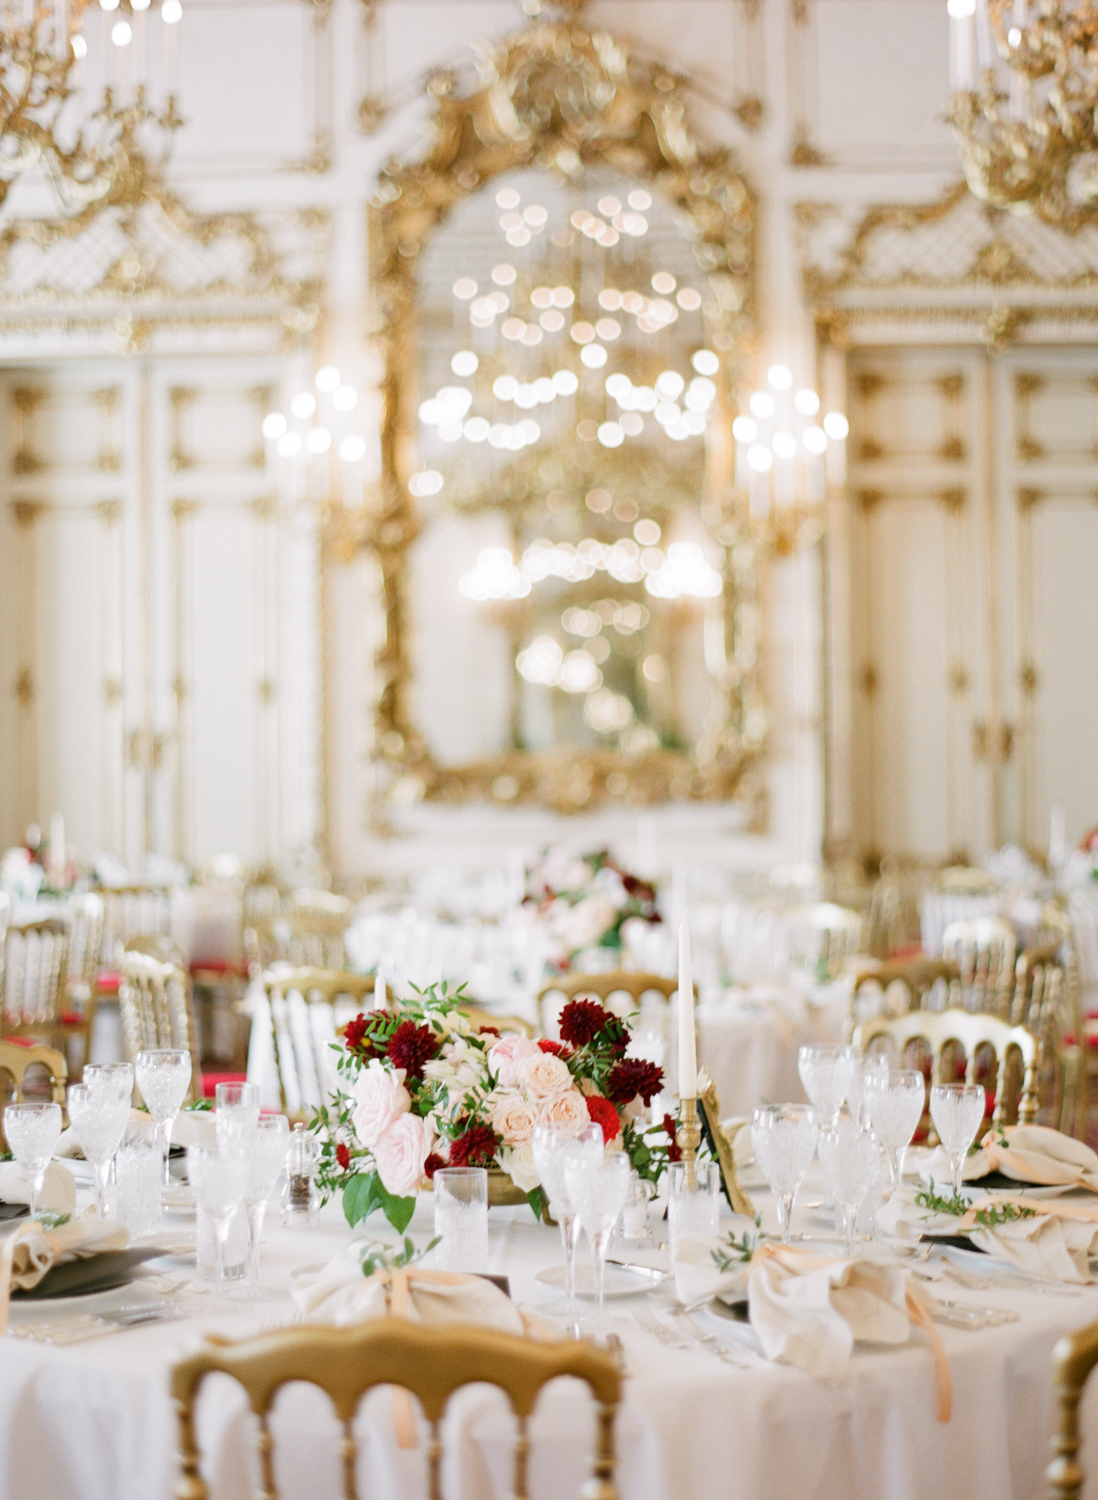 palais pallavicini wedding hotel imperial vienna wedding photographer nikol bodnarova photography 162.JPG